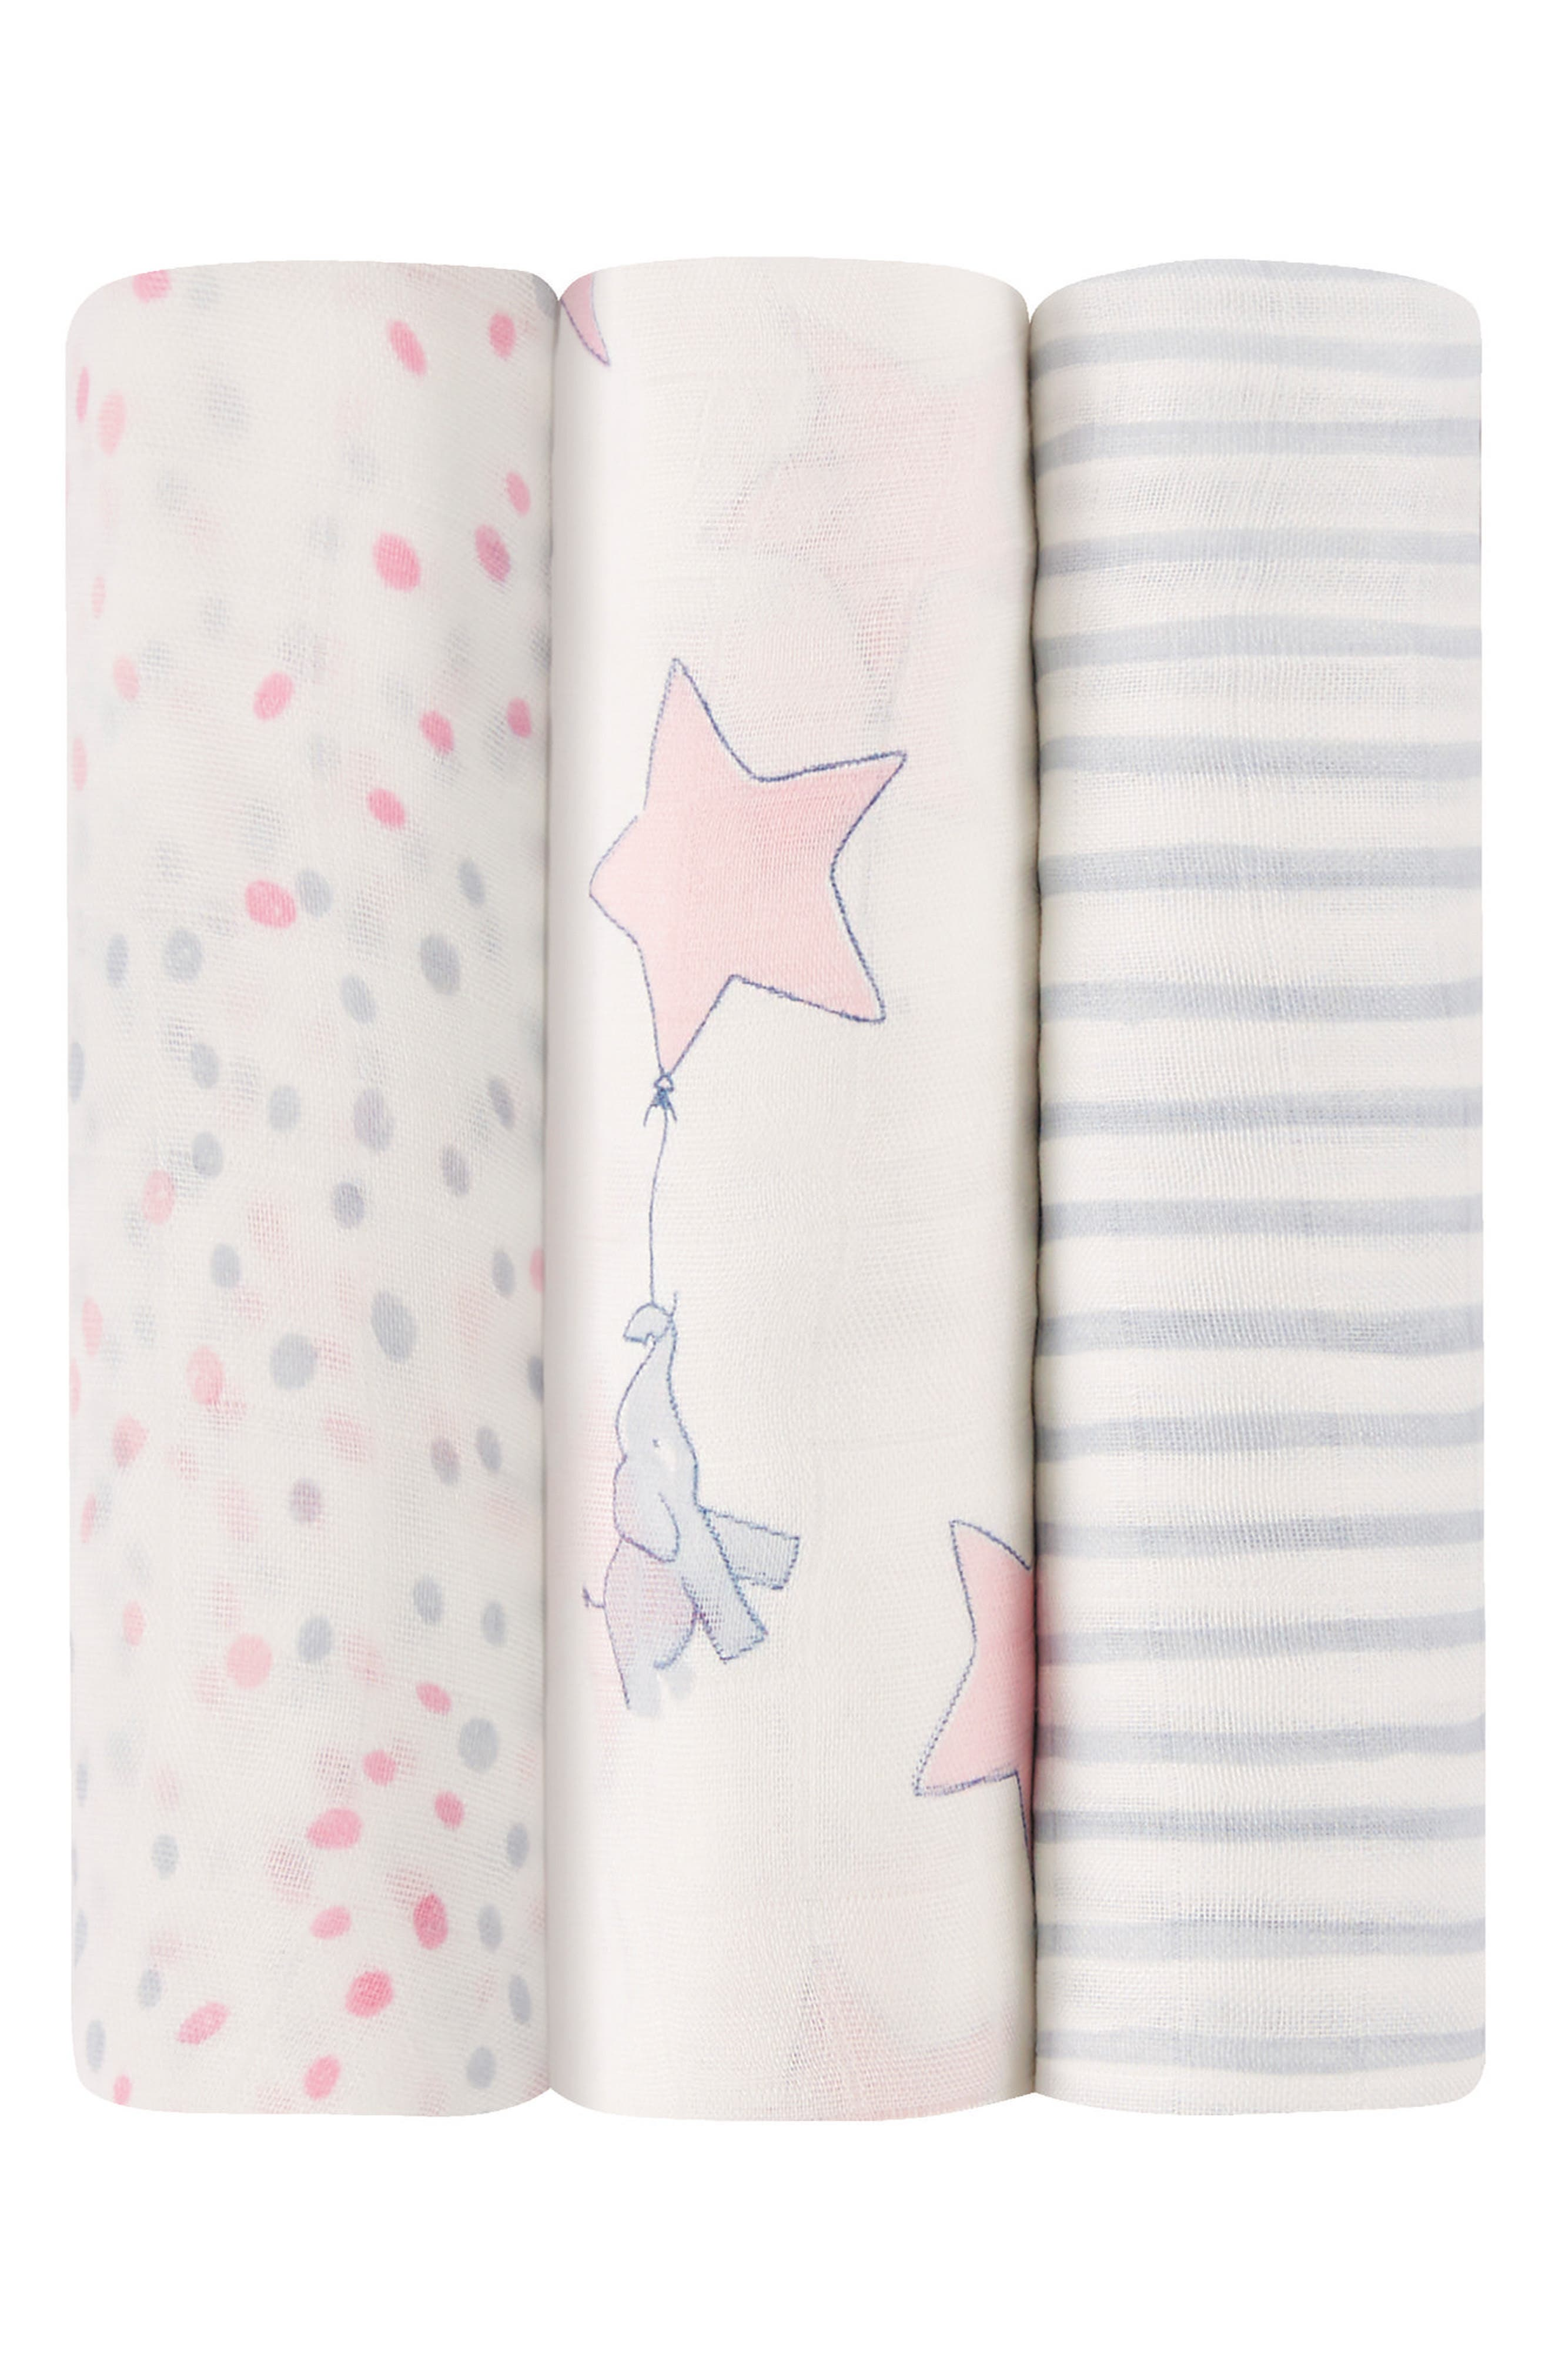 Silky Soft Pack of 3 Swaddling Cloths,                             Main thumbnail 1, color,                             Elephant Star/ Blush